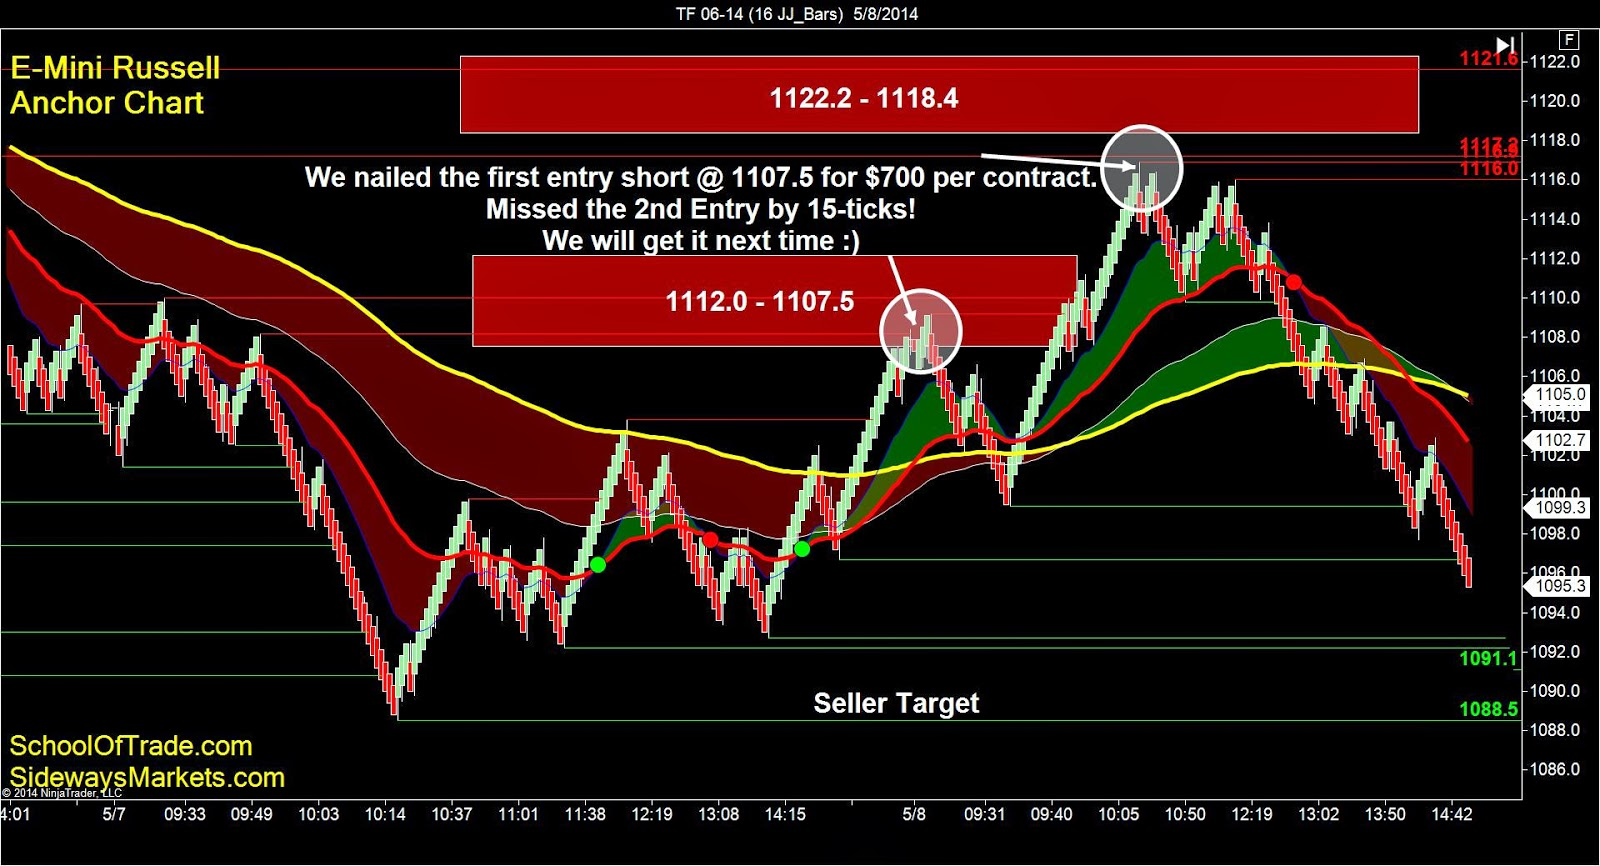 day trading mini russell futures